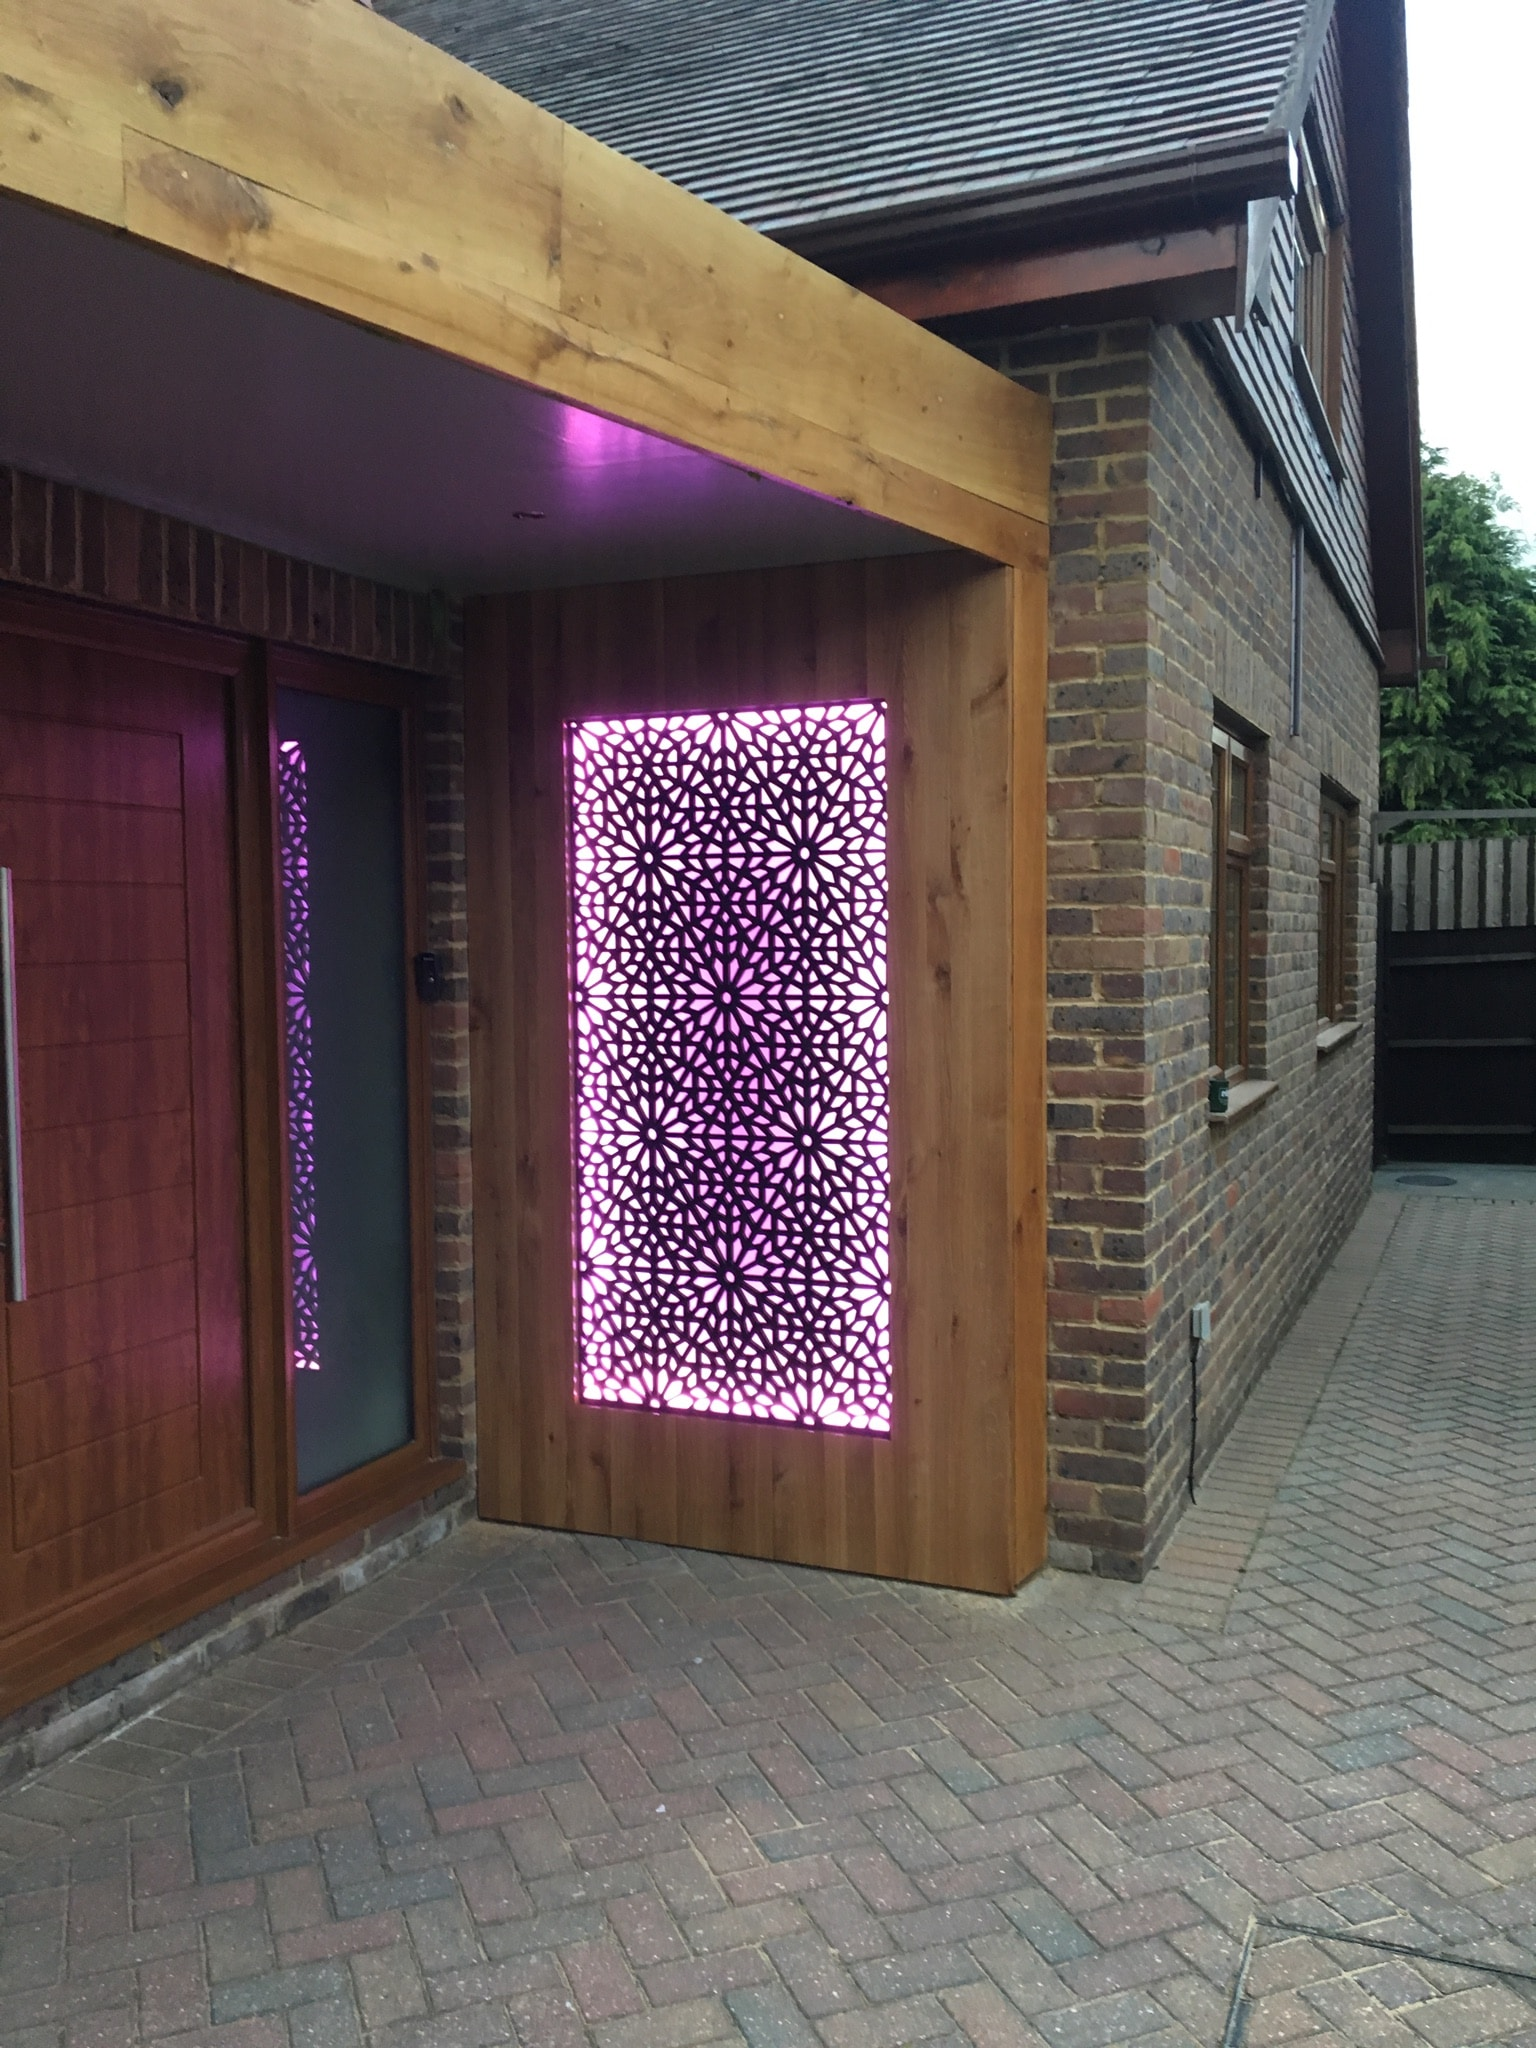 Decorative lighting panel.